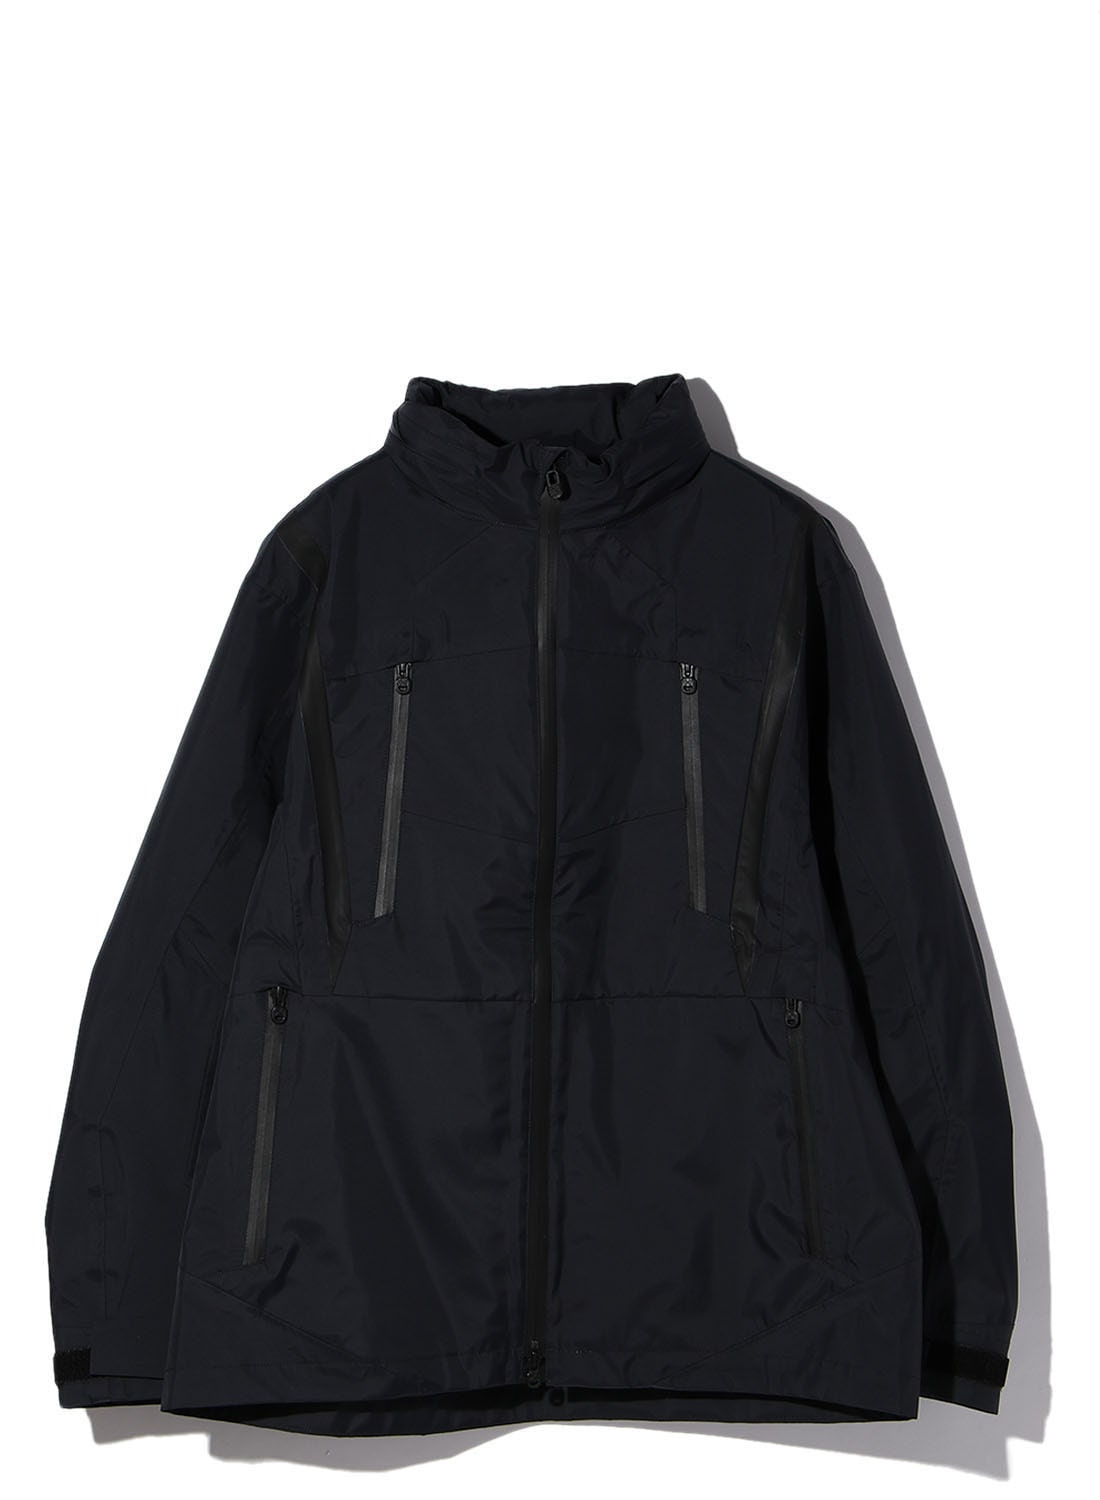 【DENHAM × White Mountaineering】SAITOS ST COLLAR JKT